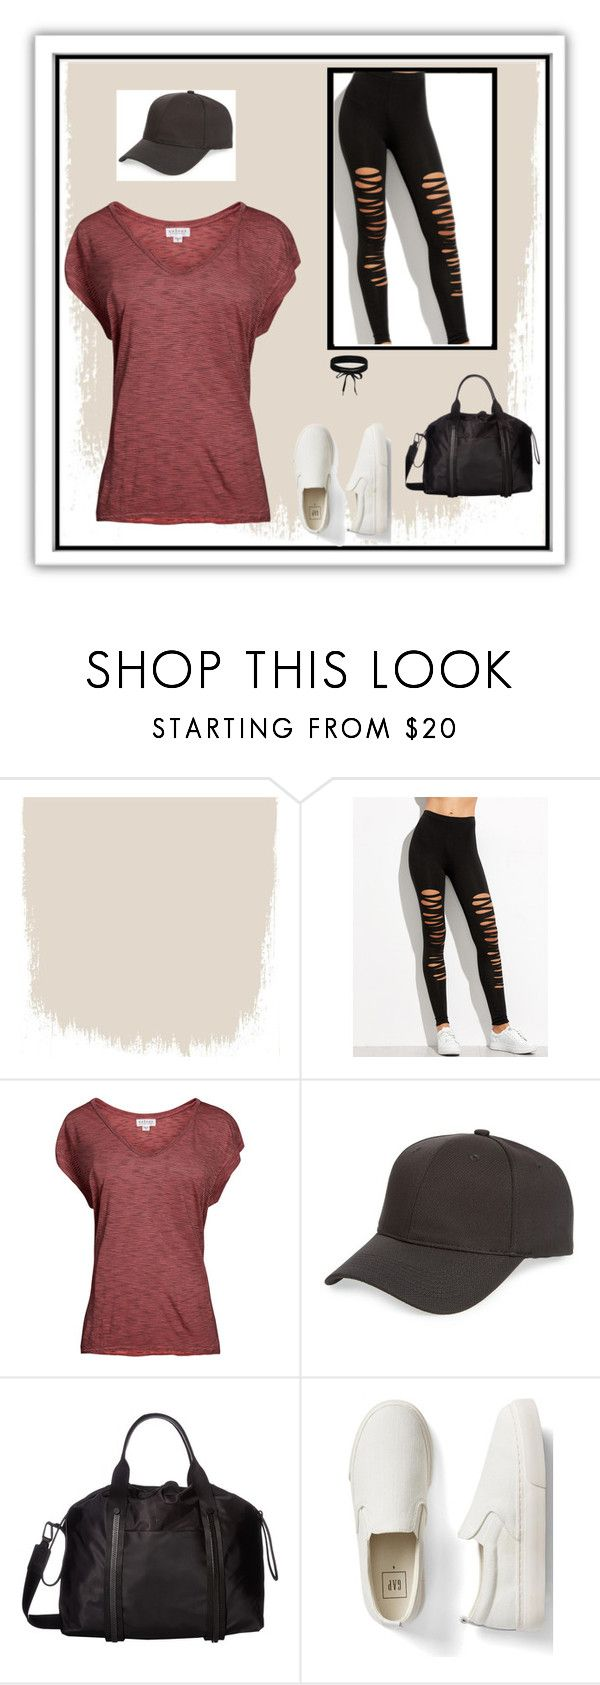 """""""All Athleisure All Day"""" by vintagefringe on Polyvore featuring Velvet by Graham & Spencer, Topshop, Cole Haan, Gap and Boohoo"""